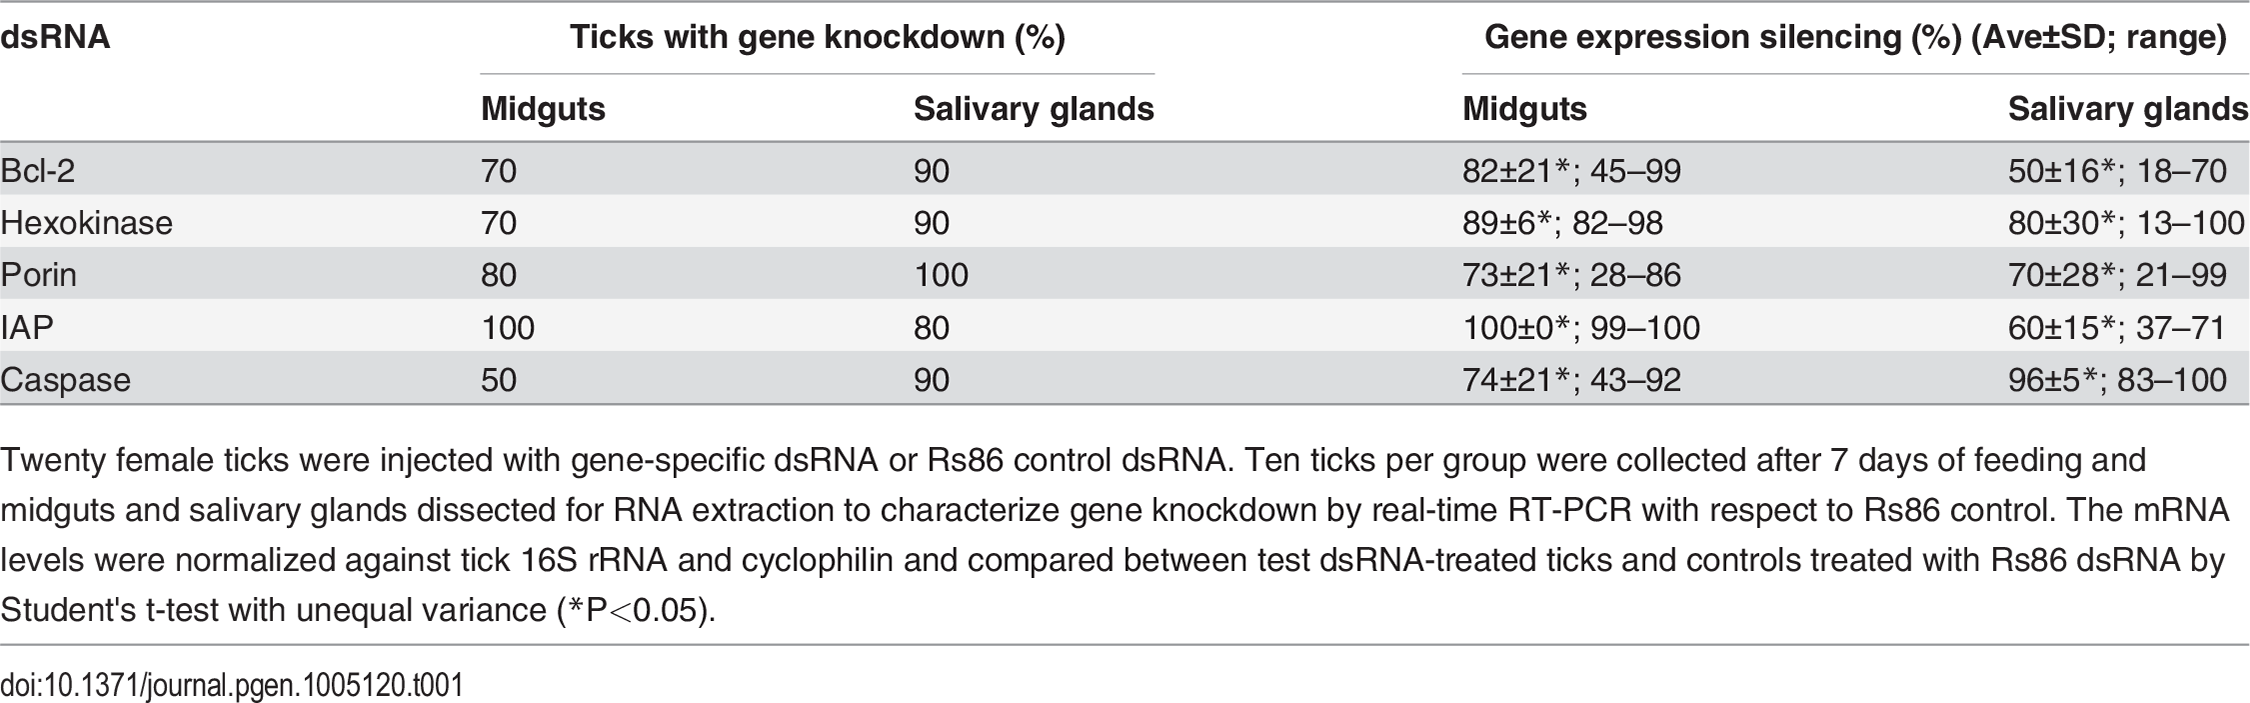 Gene knockdown in tick midguts and salivary glands.